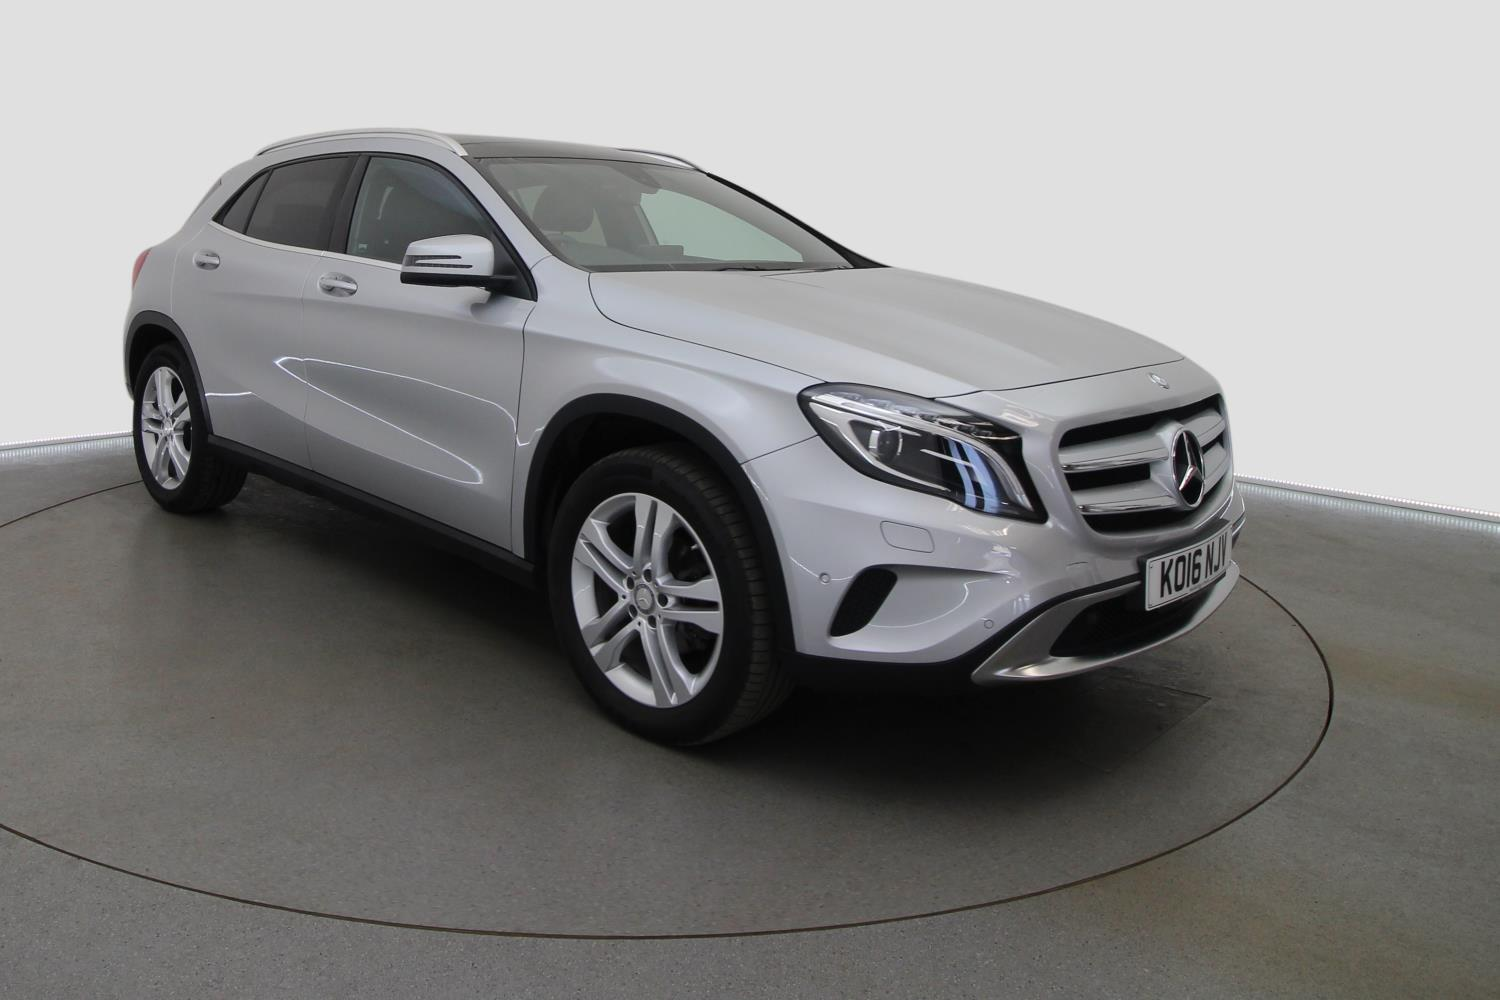 used mercedes benz gla gla 200d sport 5dr auto premium plus diesel hatchback for sale. Black Bedroom Furniture Sets. Home Design Ideas